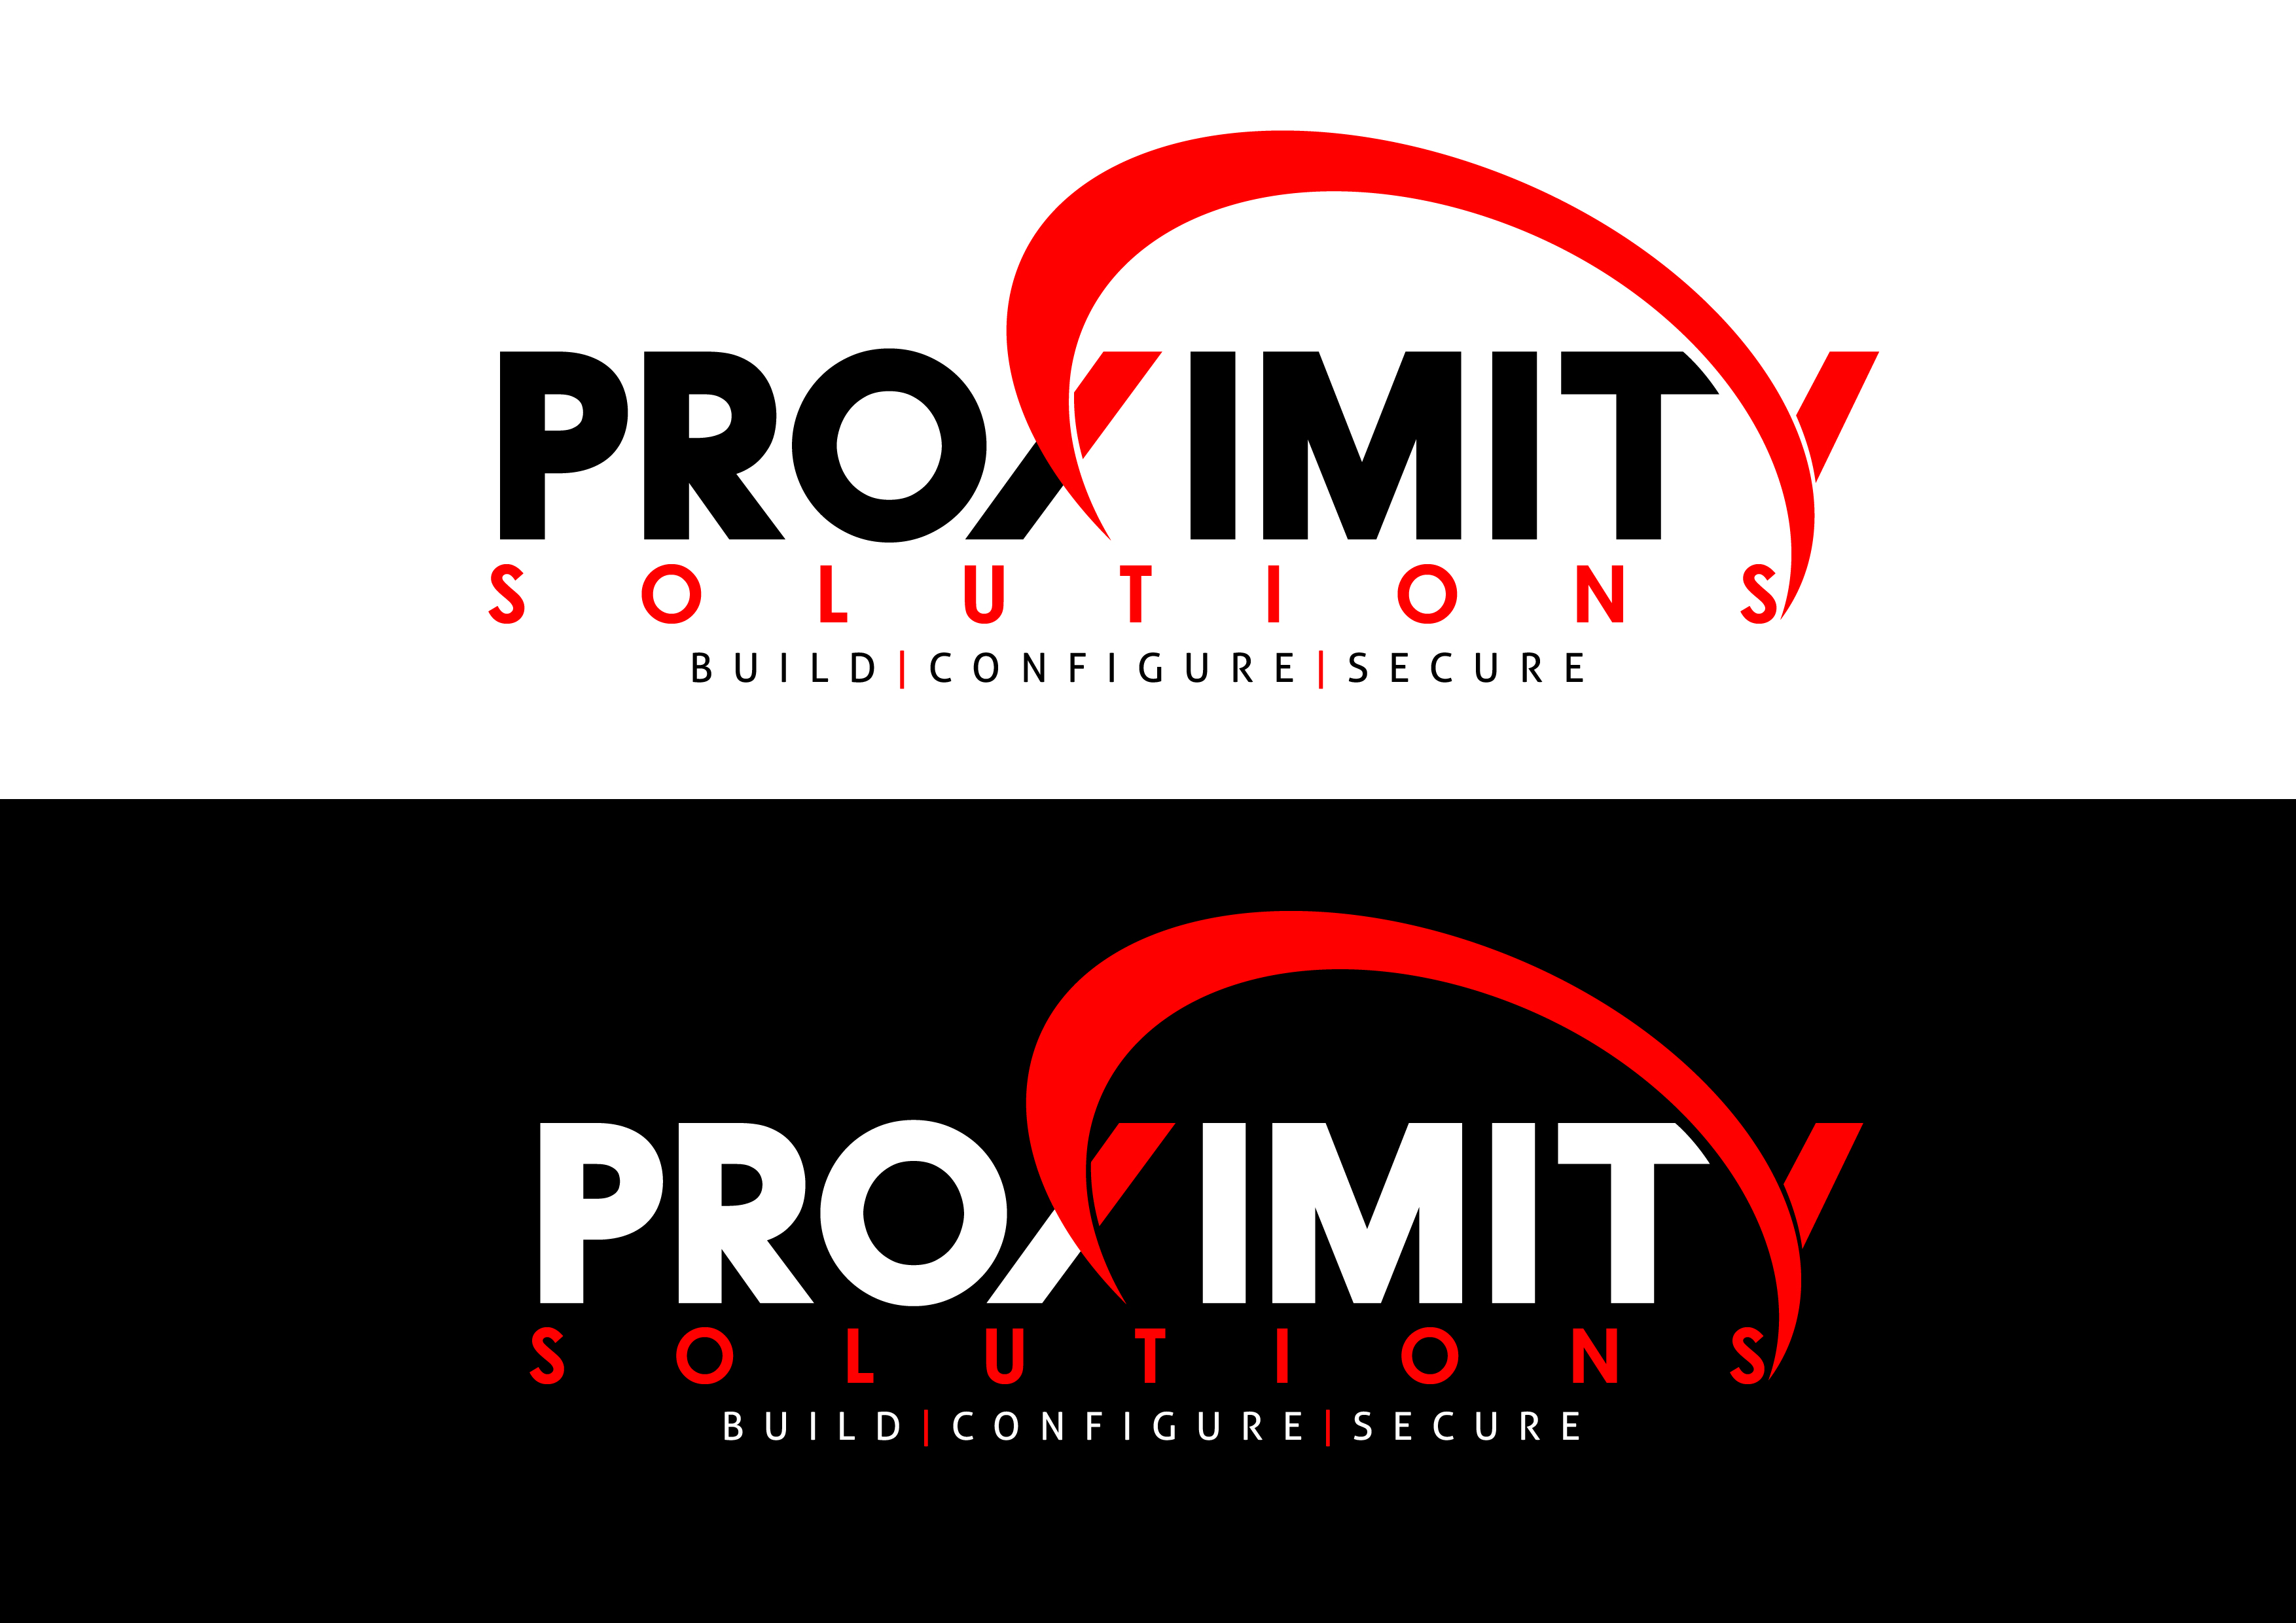 Logo Design by 3draw - Entry No. 65 in the Logo Design Contest New Logo Design for Proximity Solutions.